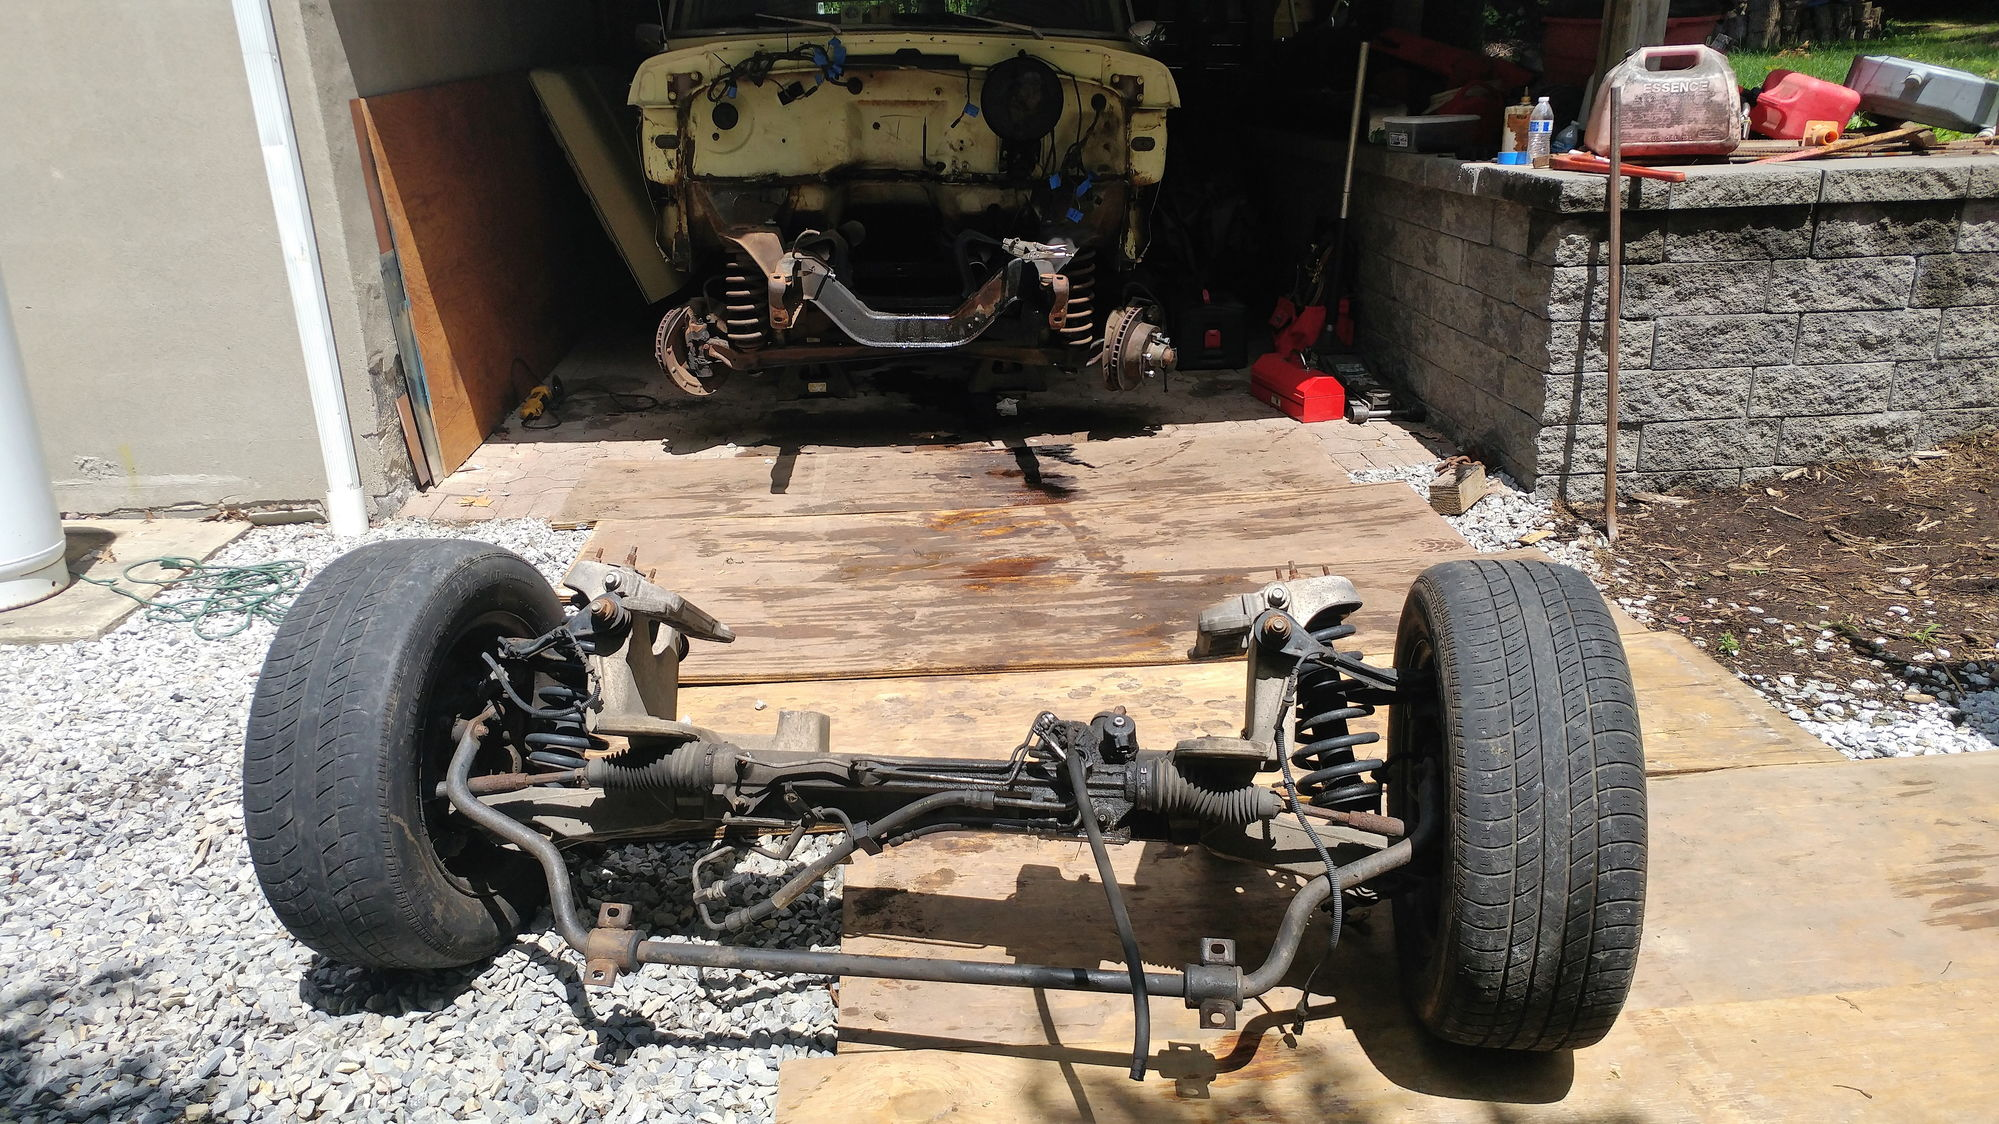 1974 f100 crown vic swap - Ford Truck Enthusiasts Forums